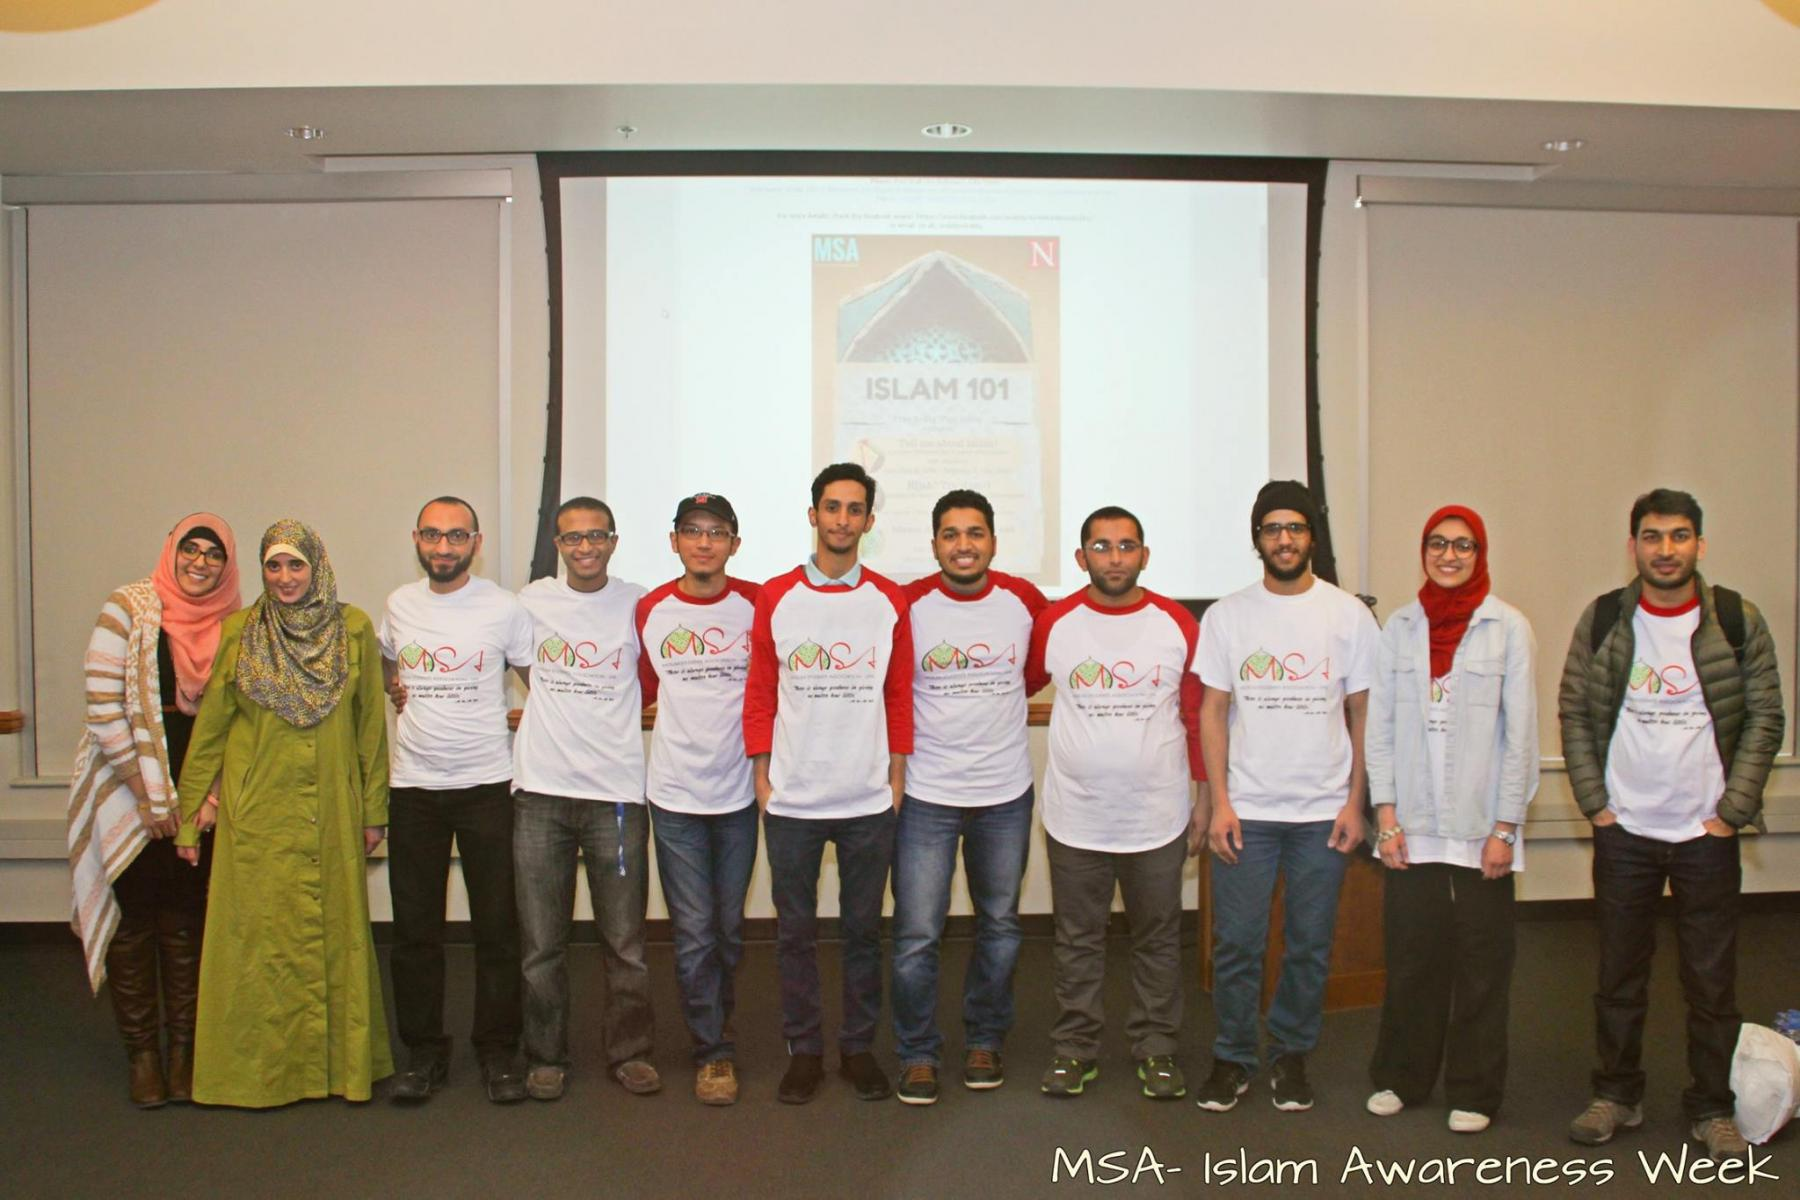 lincoln university muslim Coventry university singer halls tour part 1 - duration: 2:17 md a 4,083 views 2:17 university of lincoln, uk - animated  muslim association.